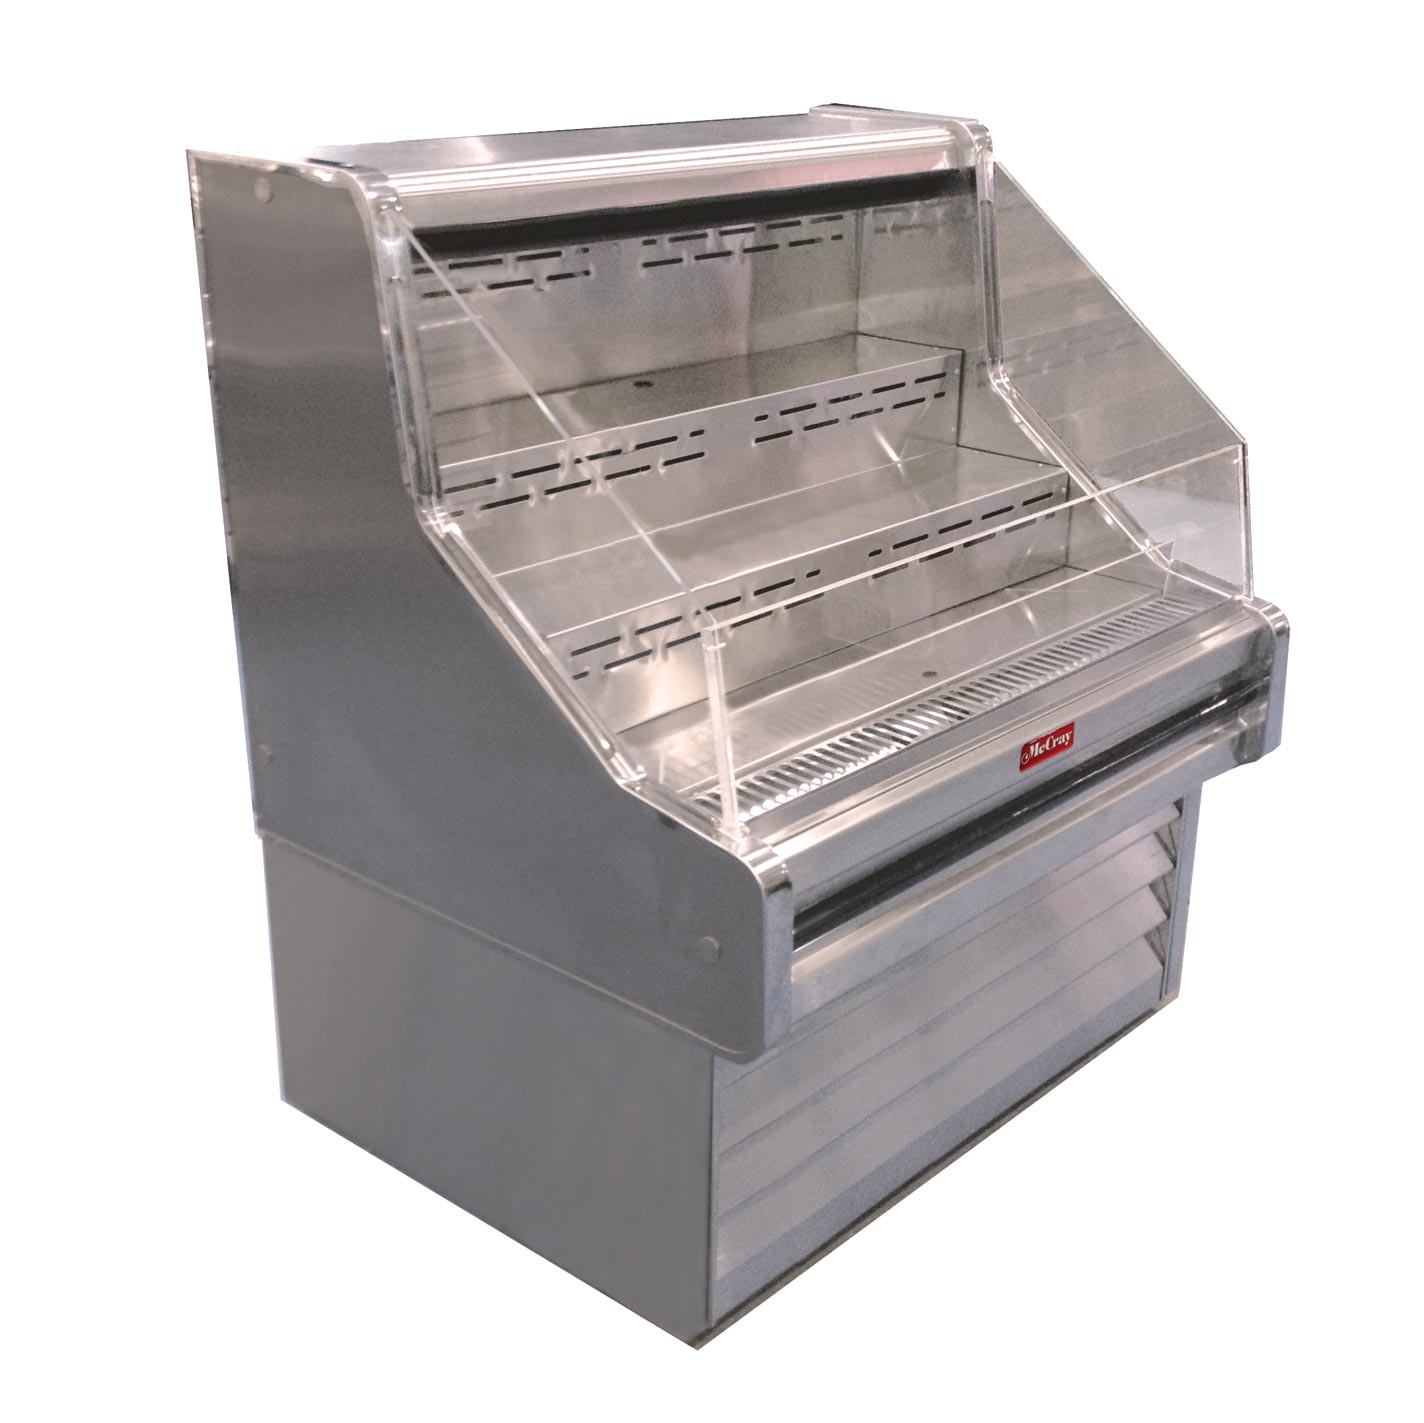 Howard-McCray R-OS35E-5-B-LED merchandiser, open refrigerated display